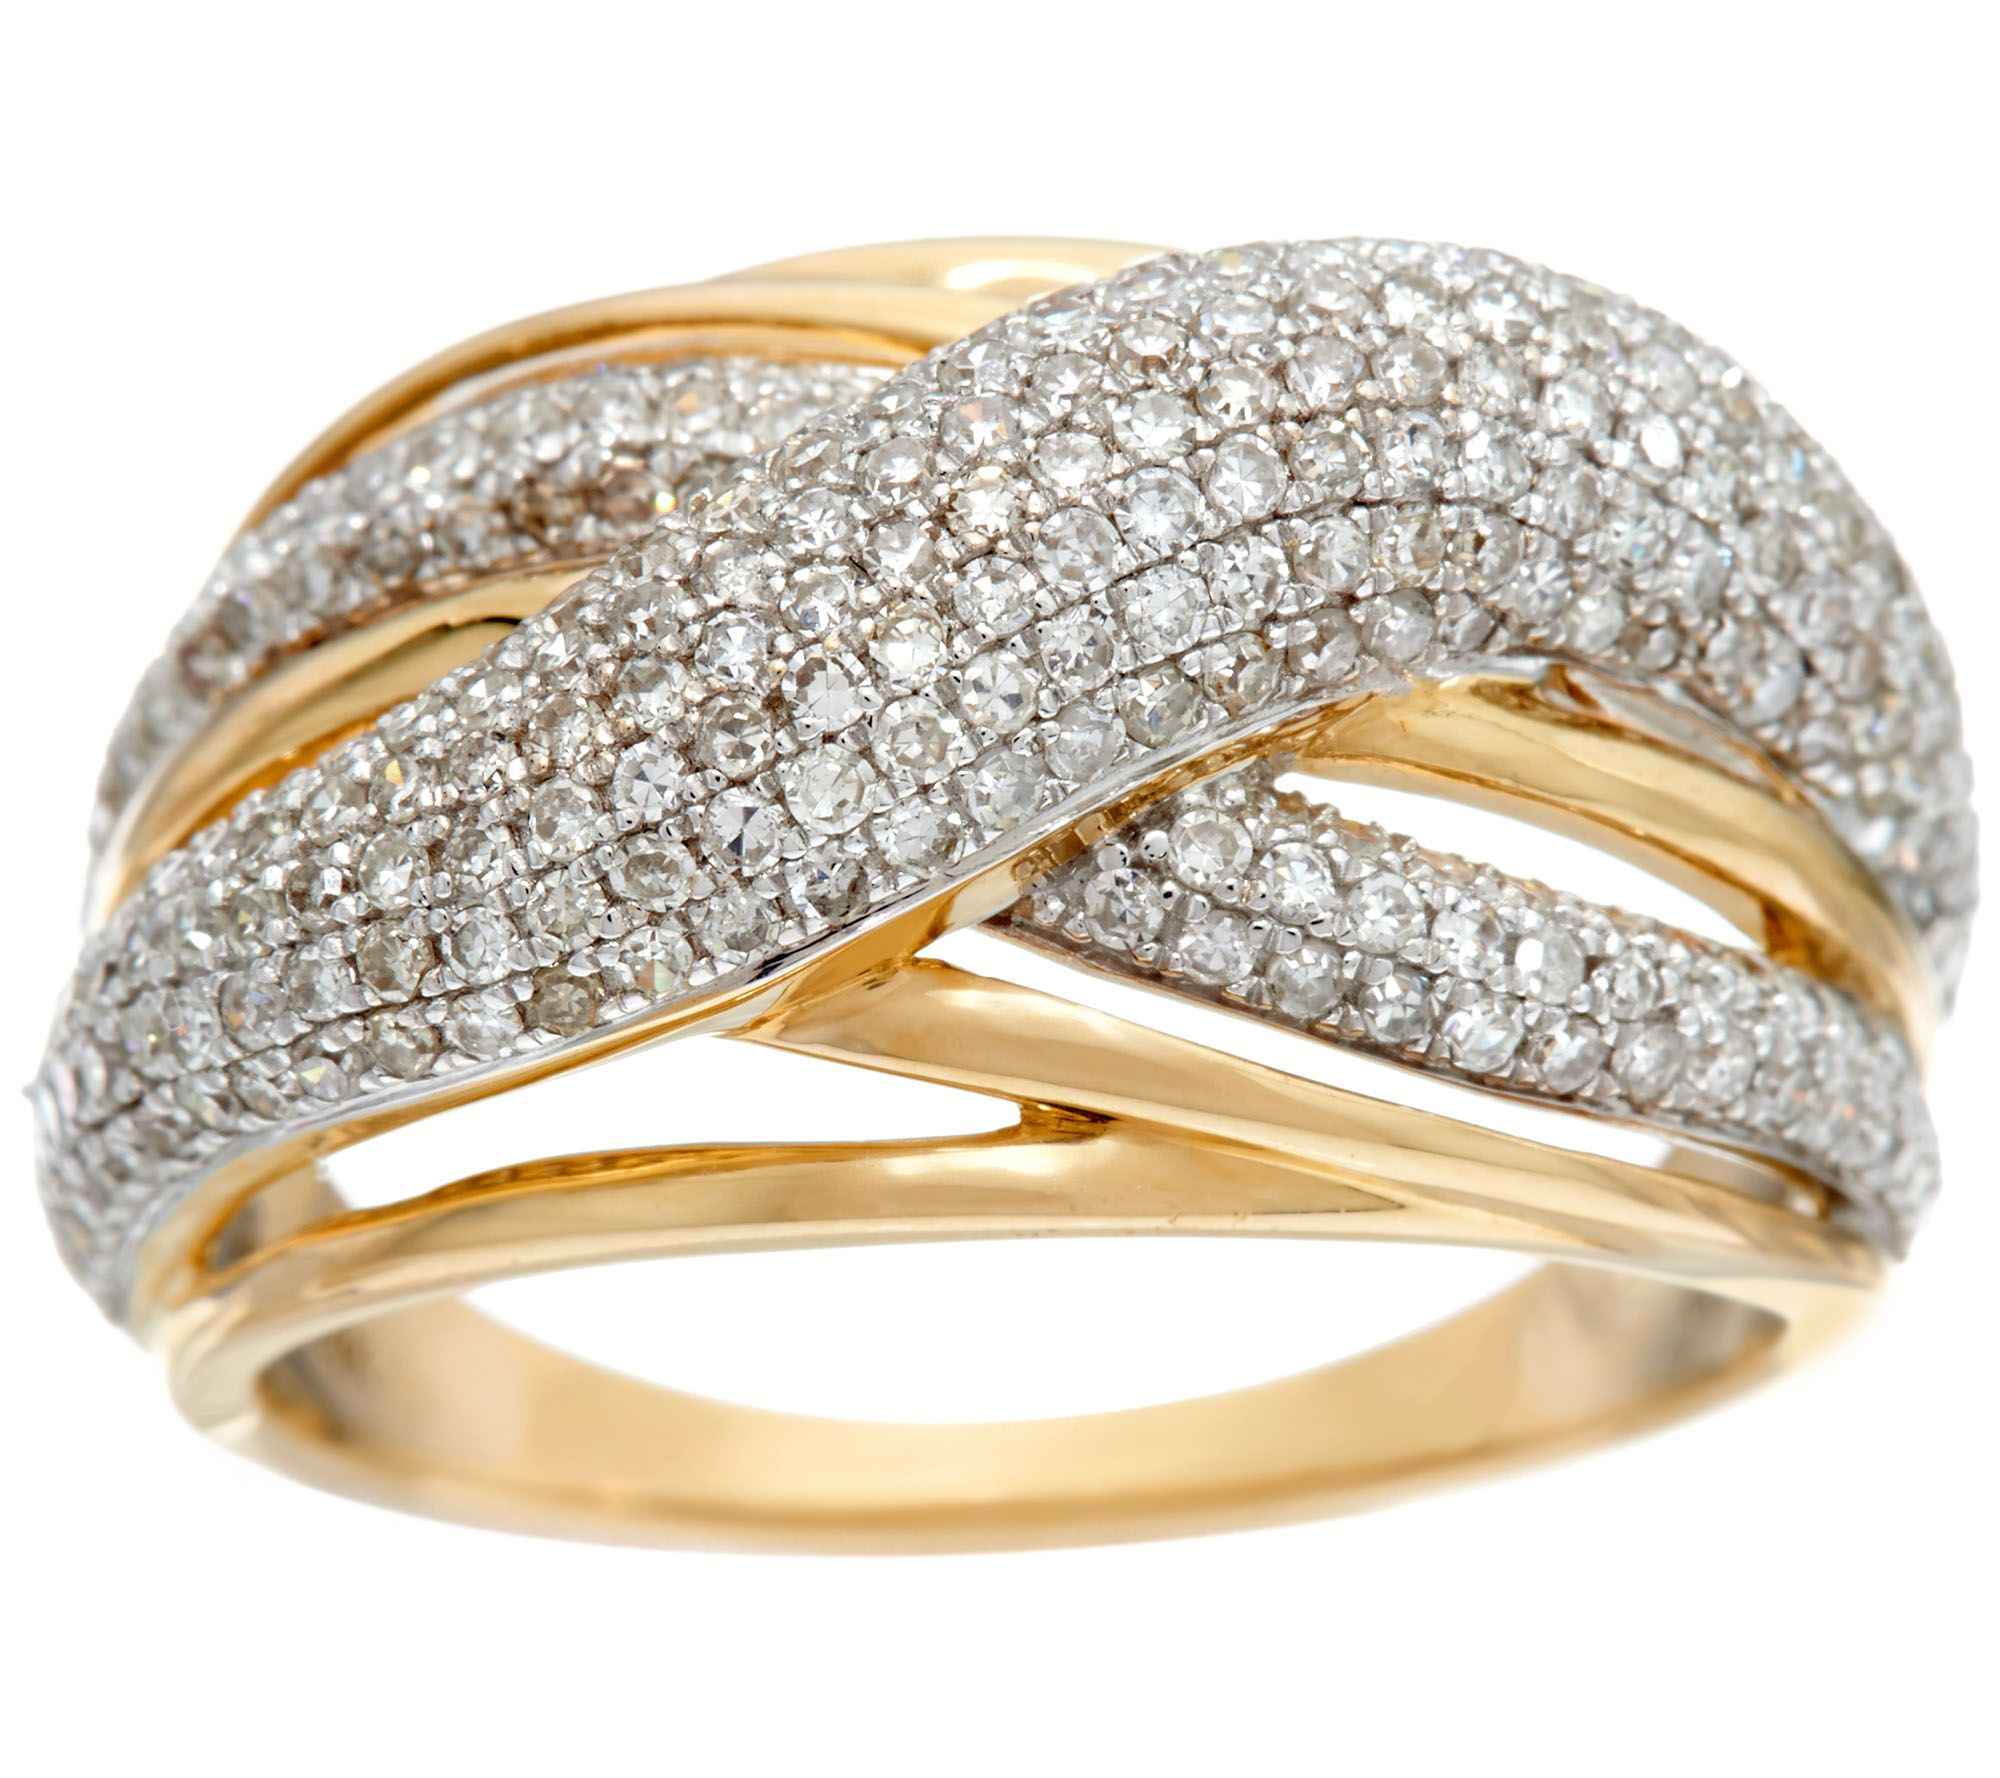 As Is Domed Pave Crossover Ring 14k Gold 1 00 Cttw By Affinity